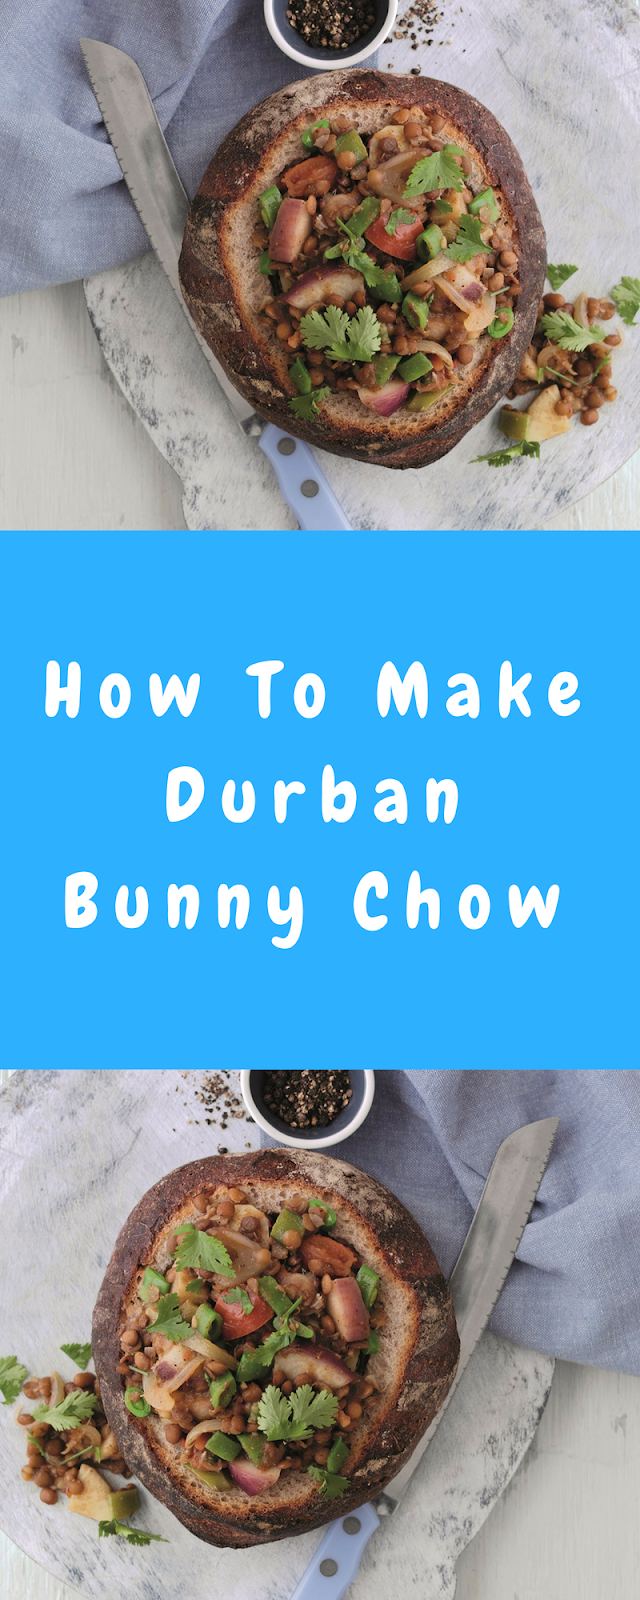 How To Make Durban Bunny Chow